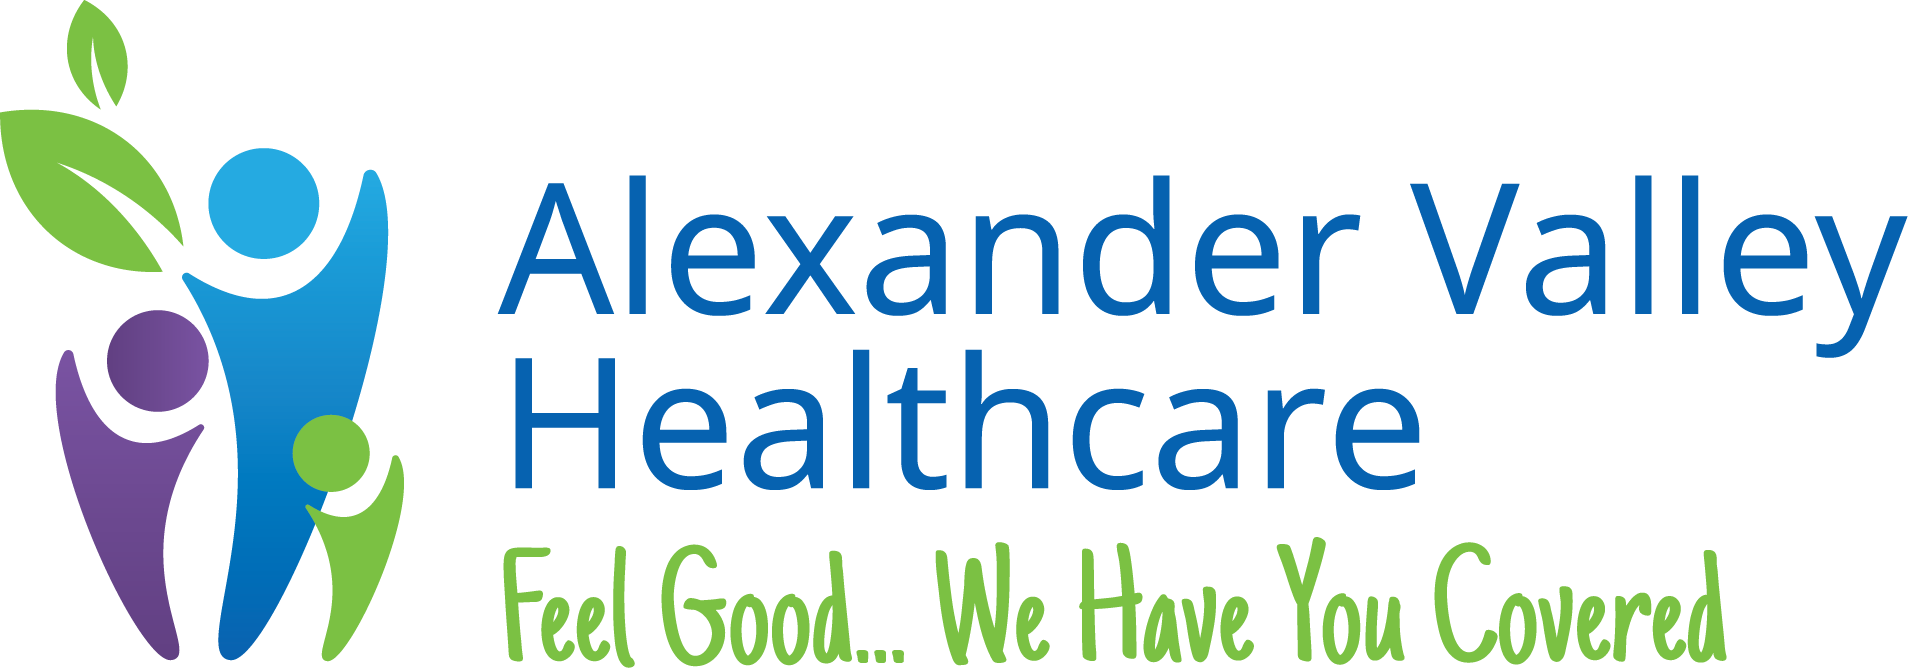 Alexander Valley Healthcare